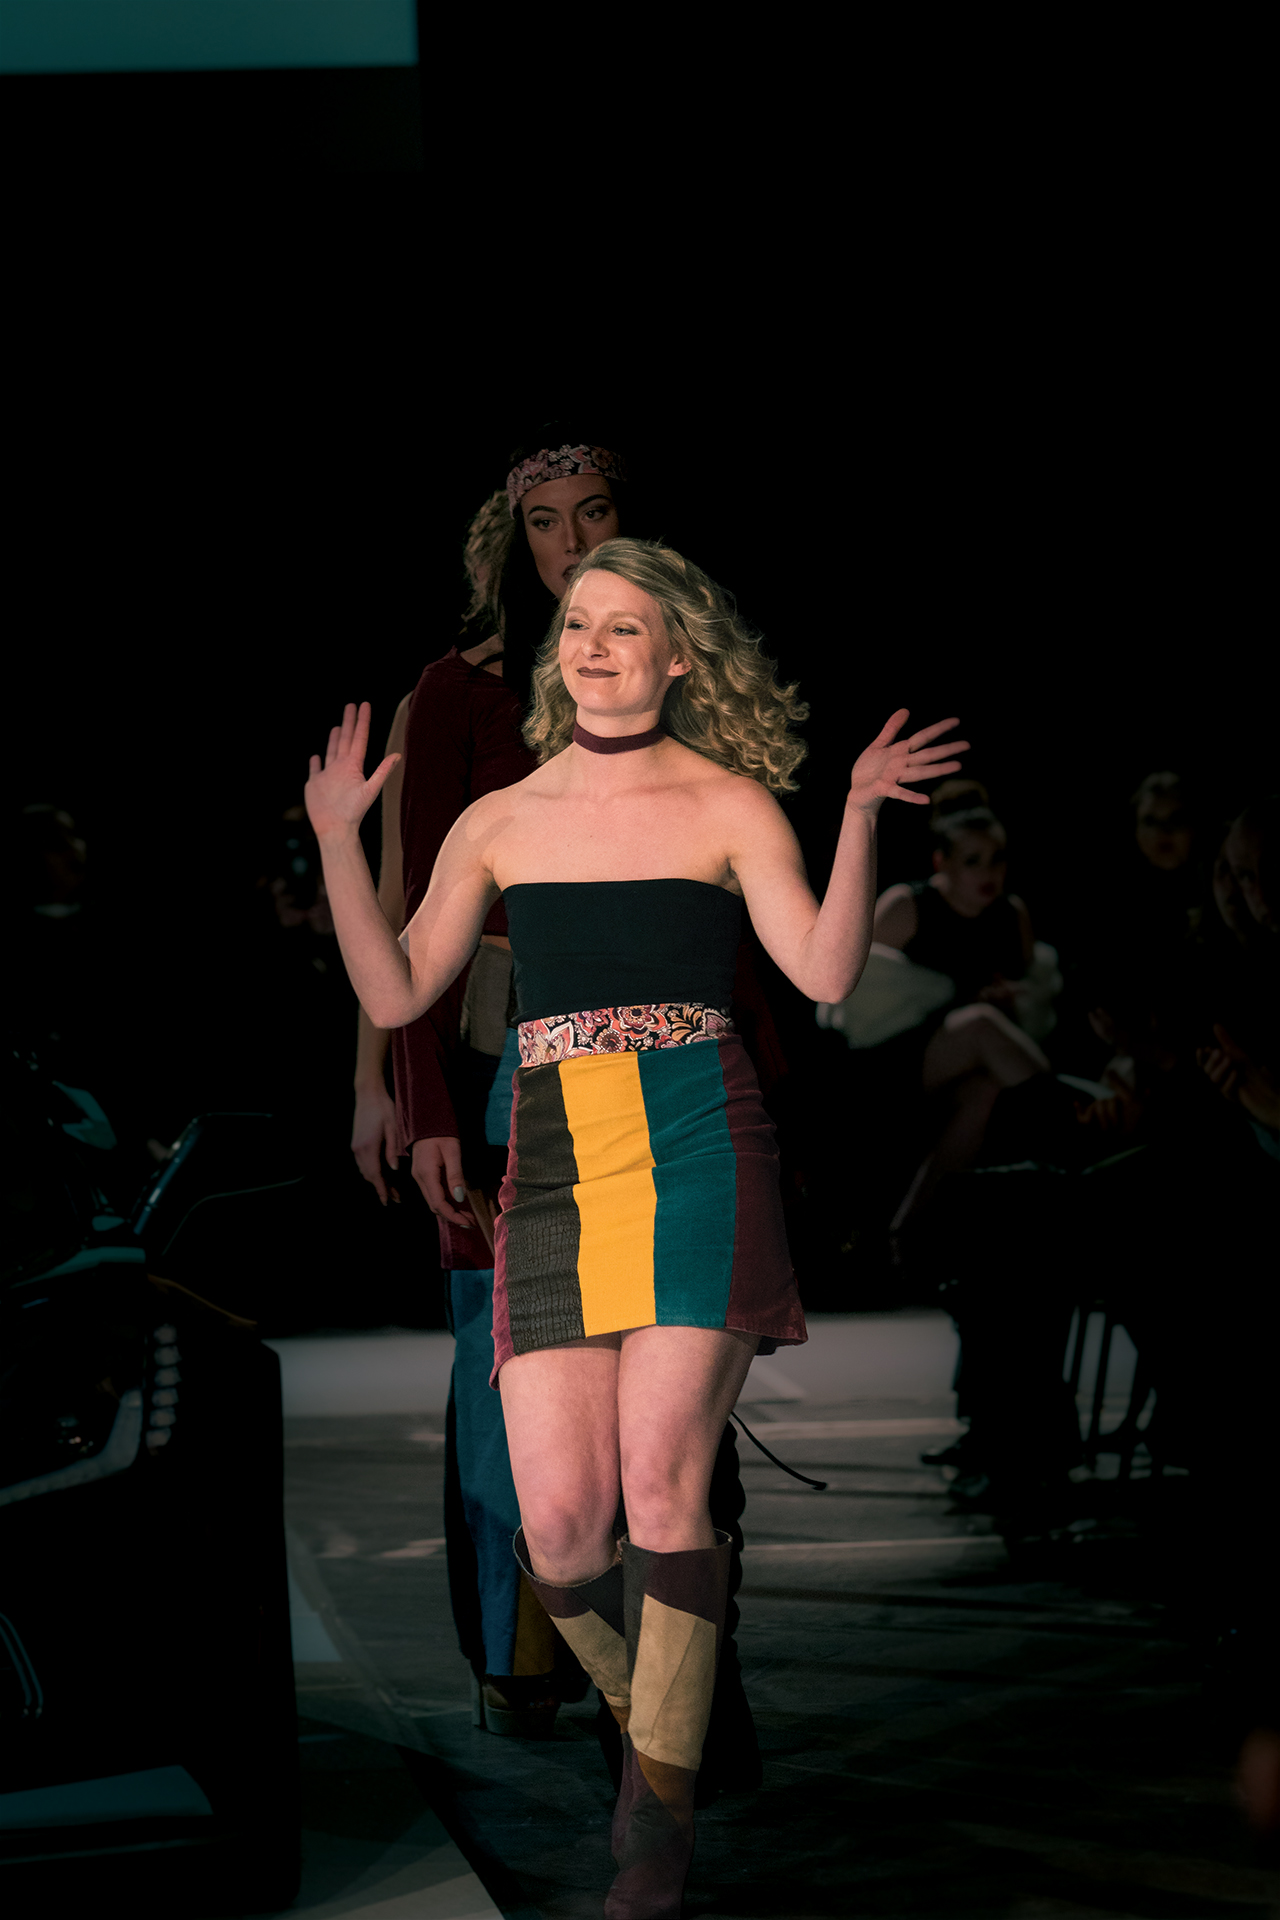 And the 2018 Student Design Award went to… Marissa Nadolney, junior in Fashion Marketing & Management, who received the award for the third year in a row. She was one of eight student designers who lit up the runway modeling their unique visions.